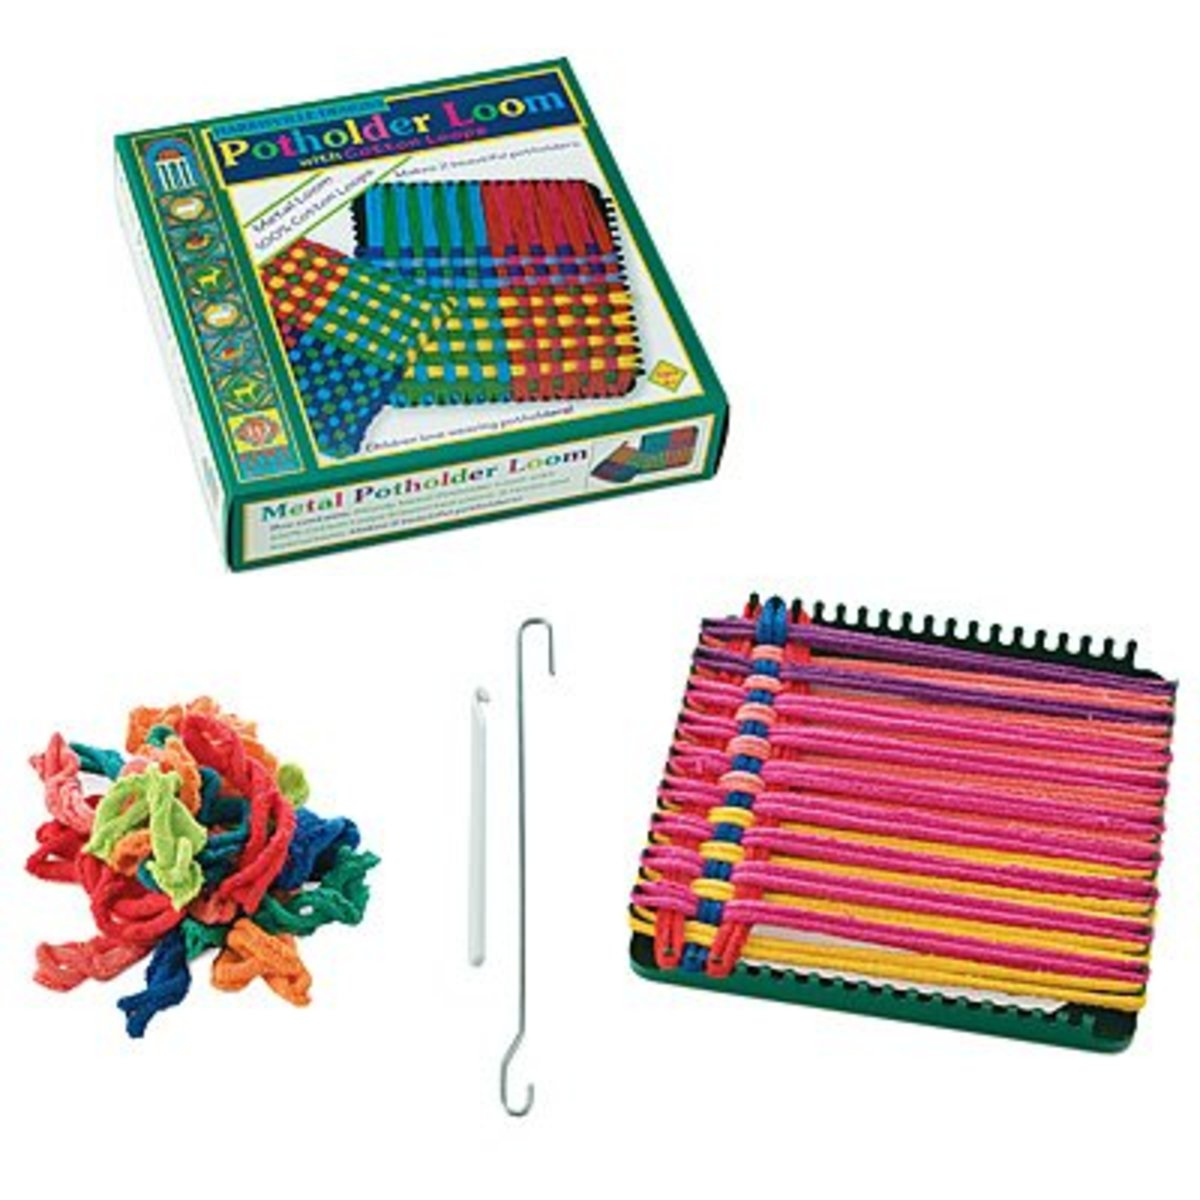 A gift that takes you back...remember this potholder loom from your youth? Maybe your daughter will too!